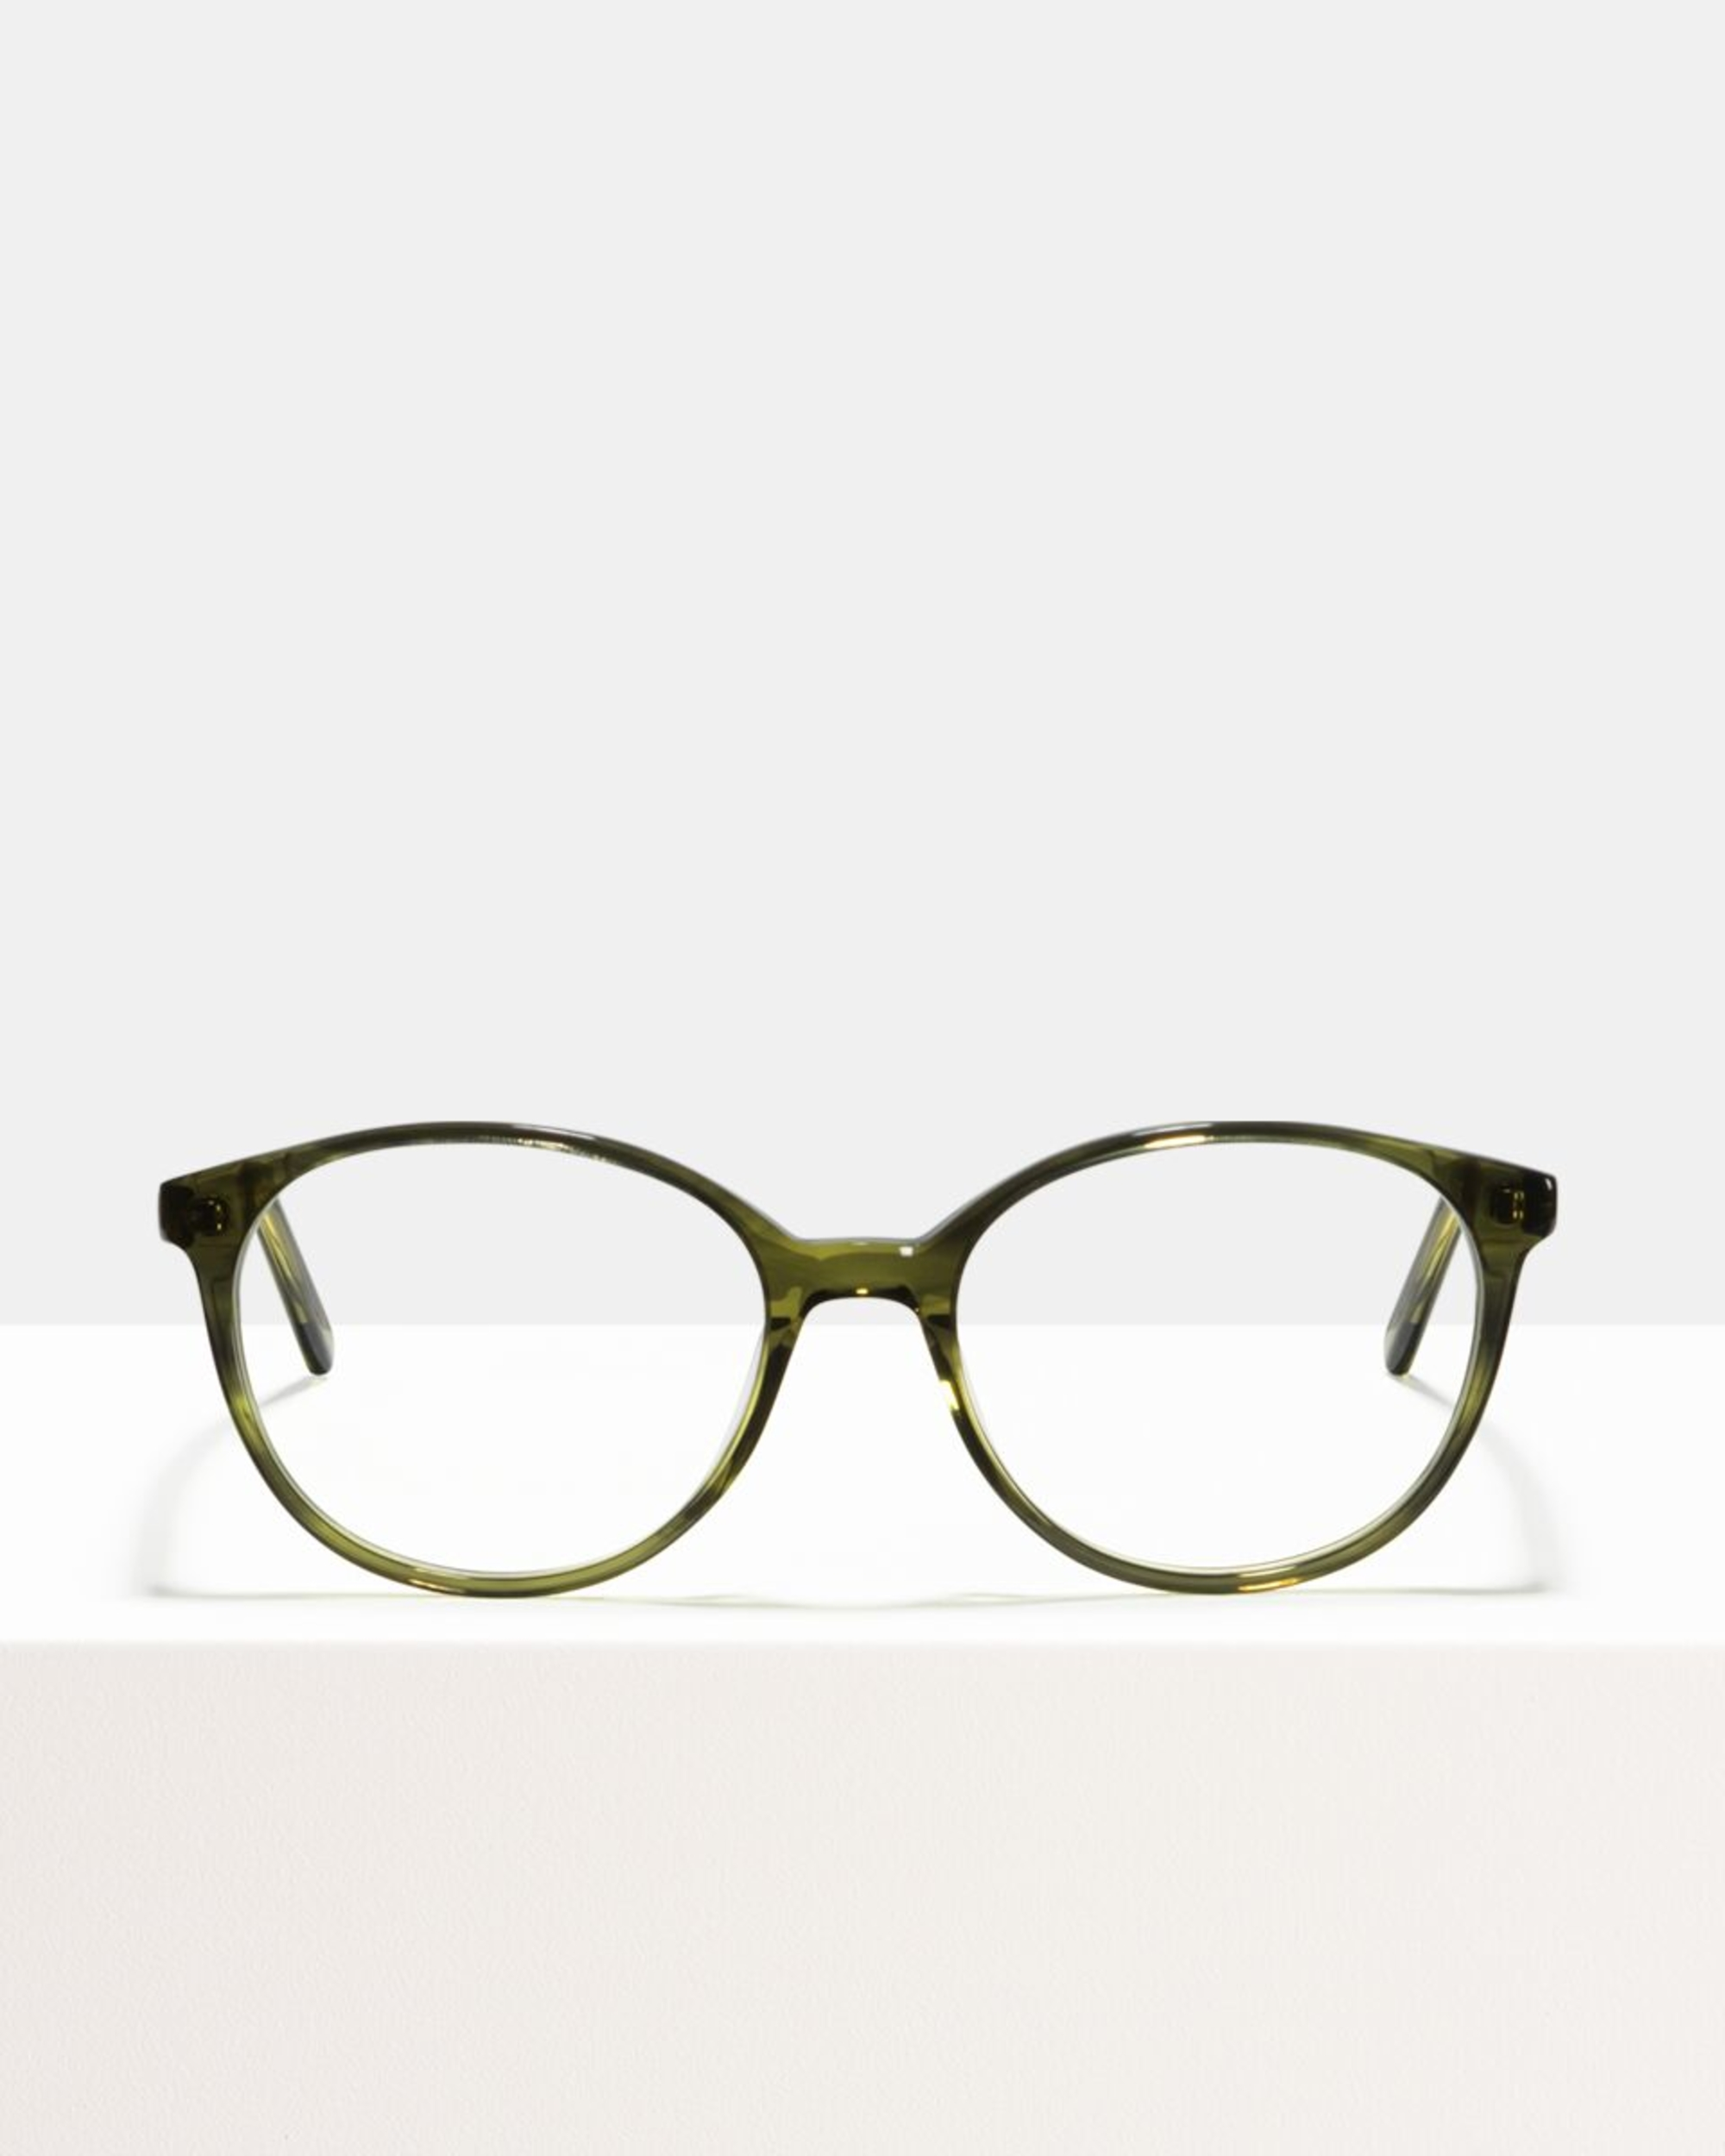 Ace & Tate Glasses |  acetate in Green